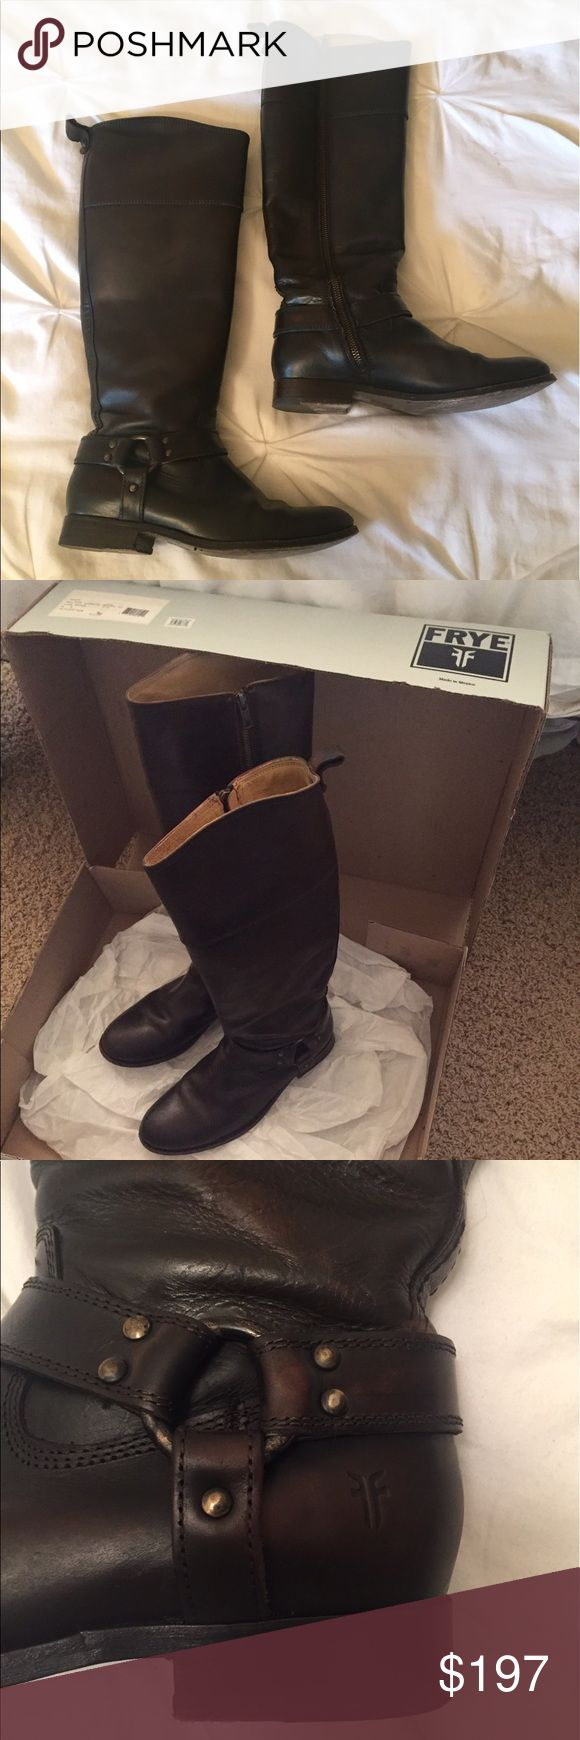 """Frye Melissa Harness Boots Like new frye boots! Vintage dark brown leather. Very versatile - in the words of Monica Gellar 'they're very practical. You can wear them with dresses, with skirts, with pants..."""" Frye Shoes Heeled Boots"""